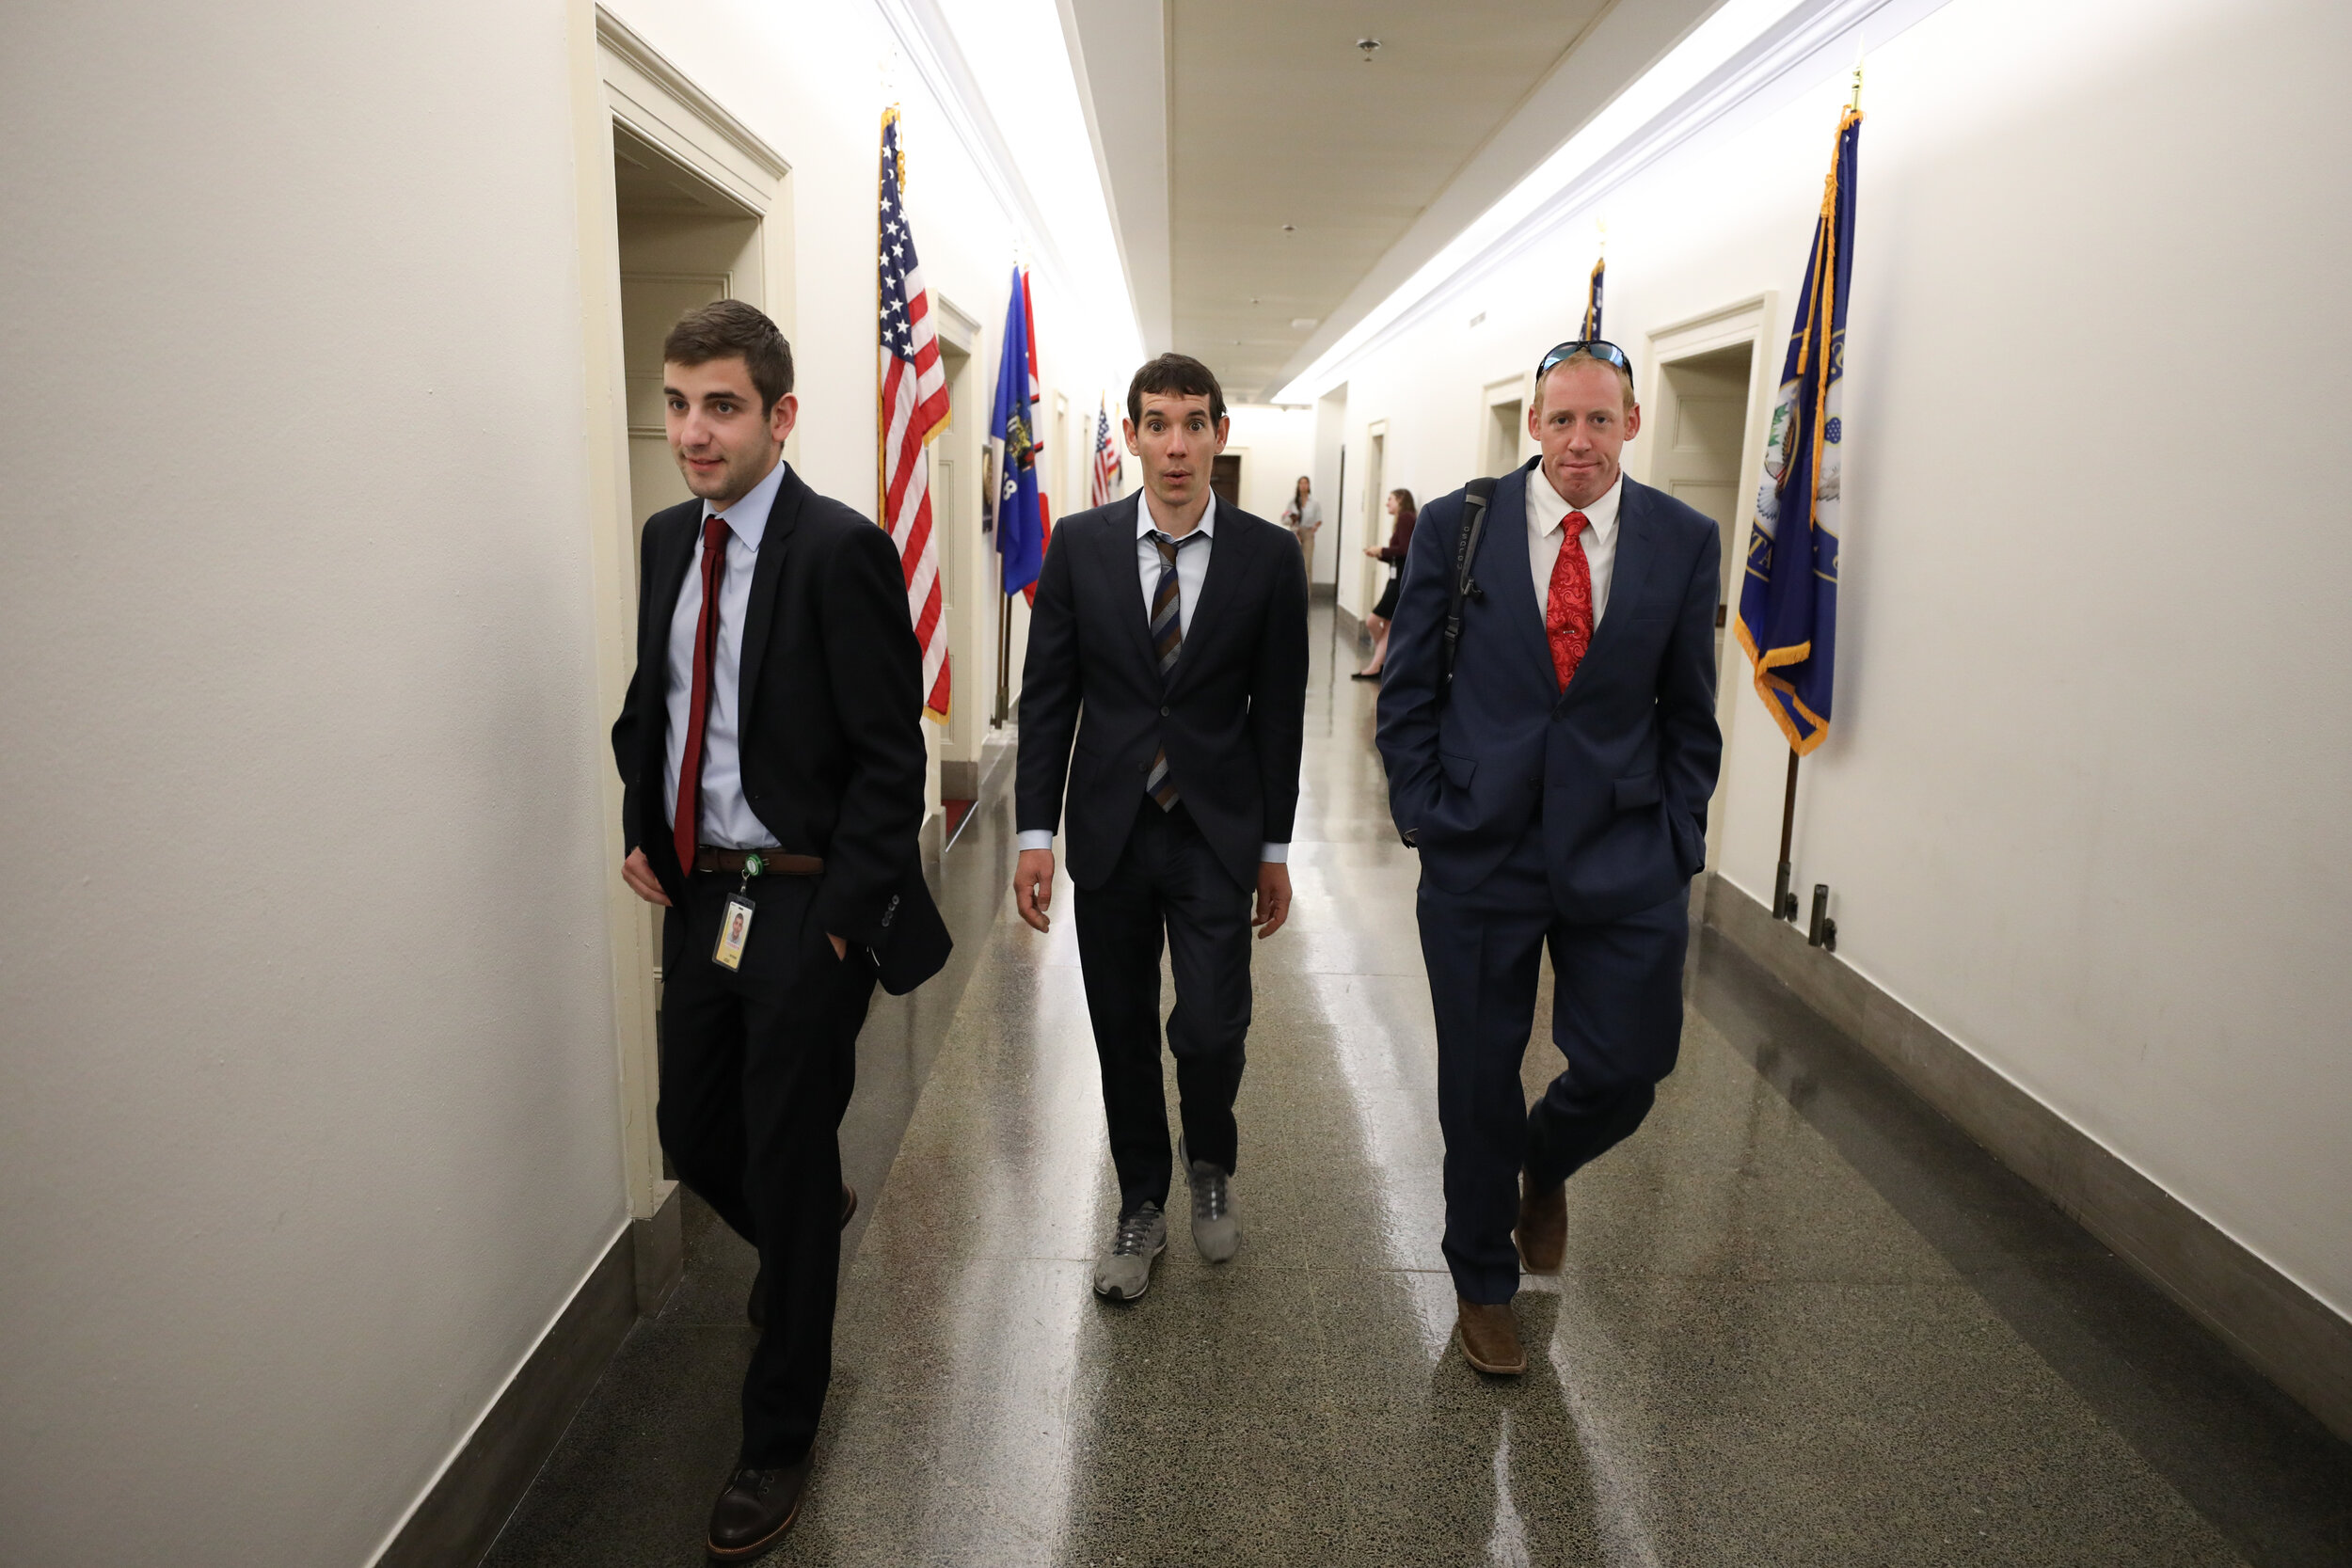 A staffer, Alex Honnold, and Justin Napolitano approach a meeting. Photo © Stephen Gosling.